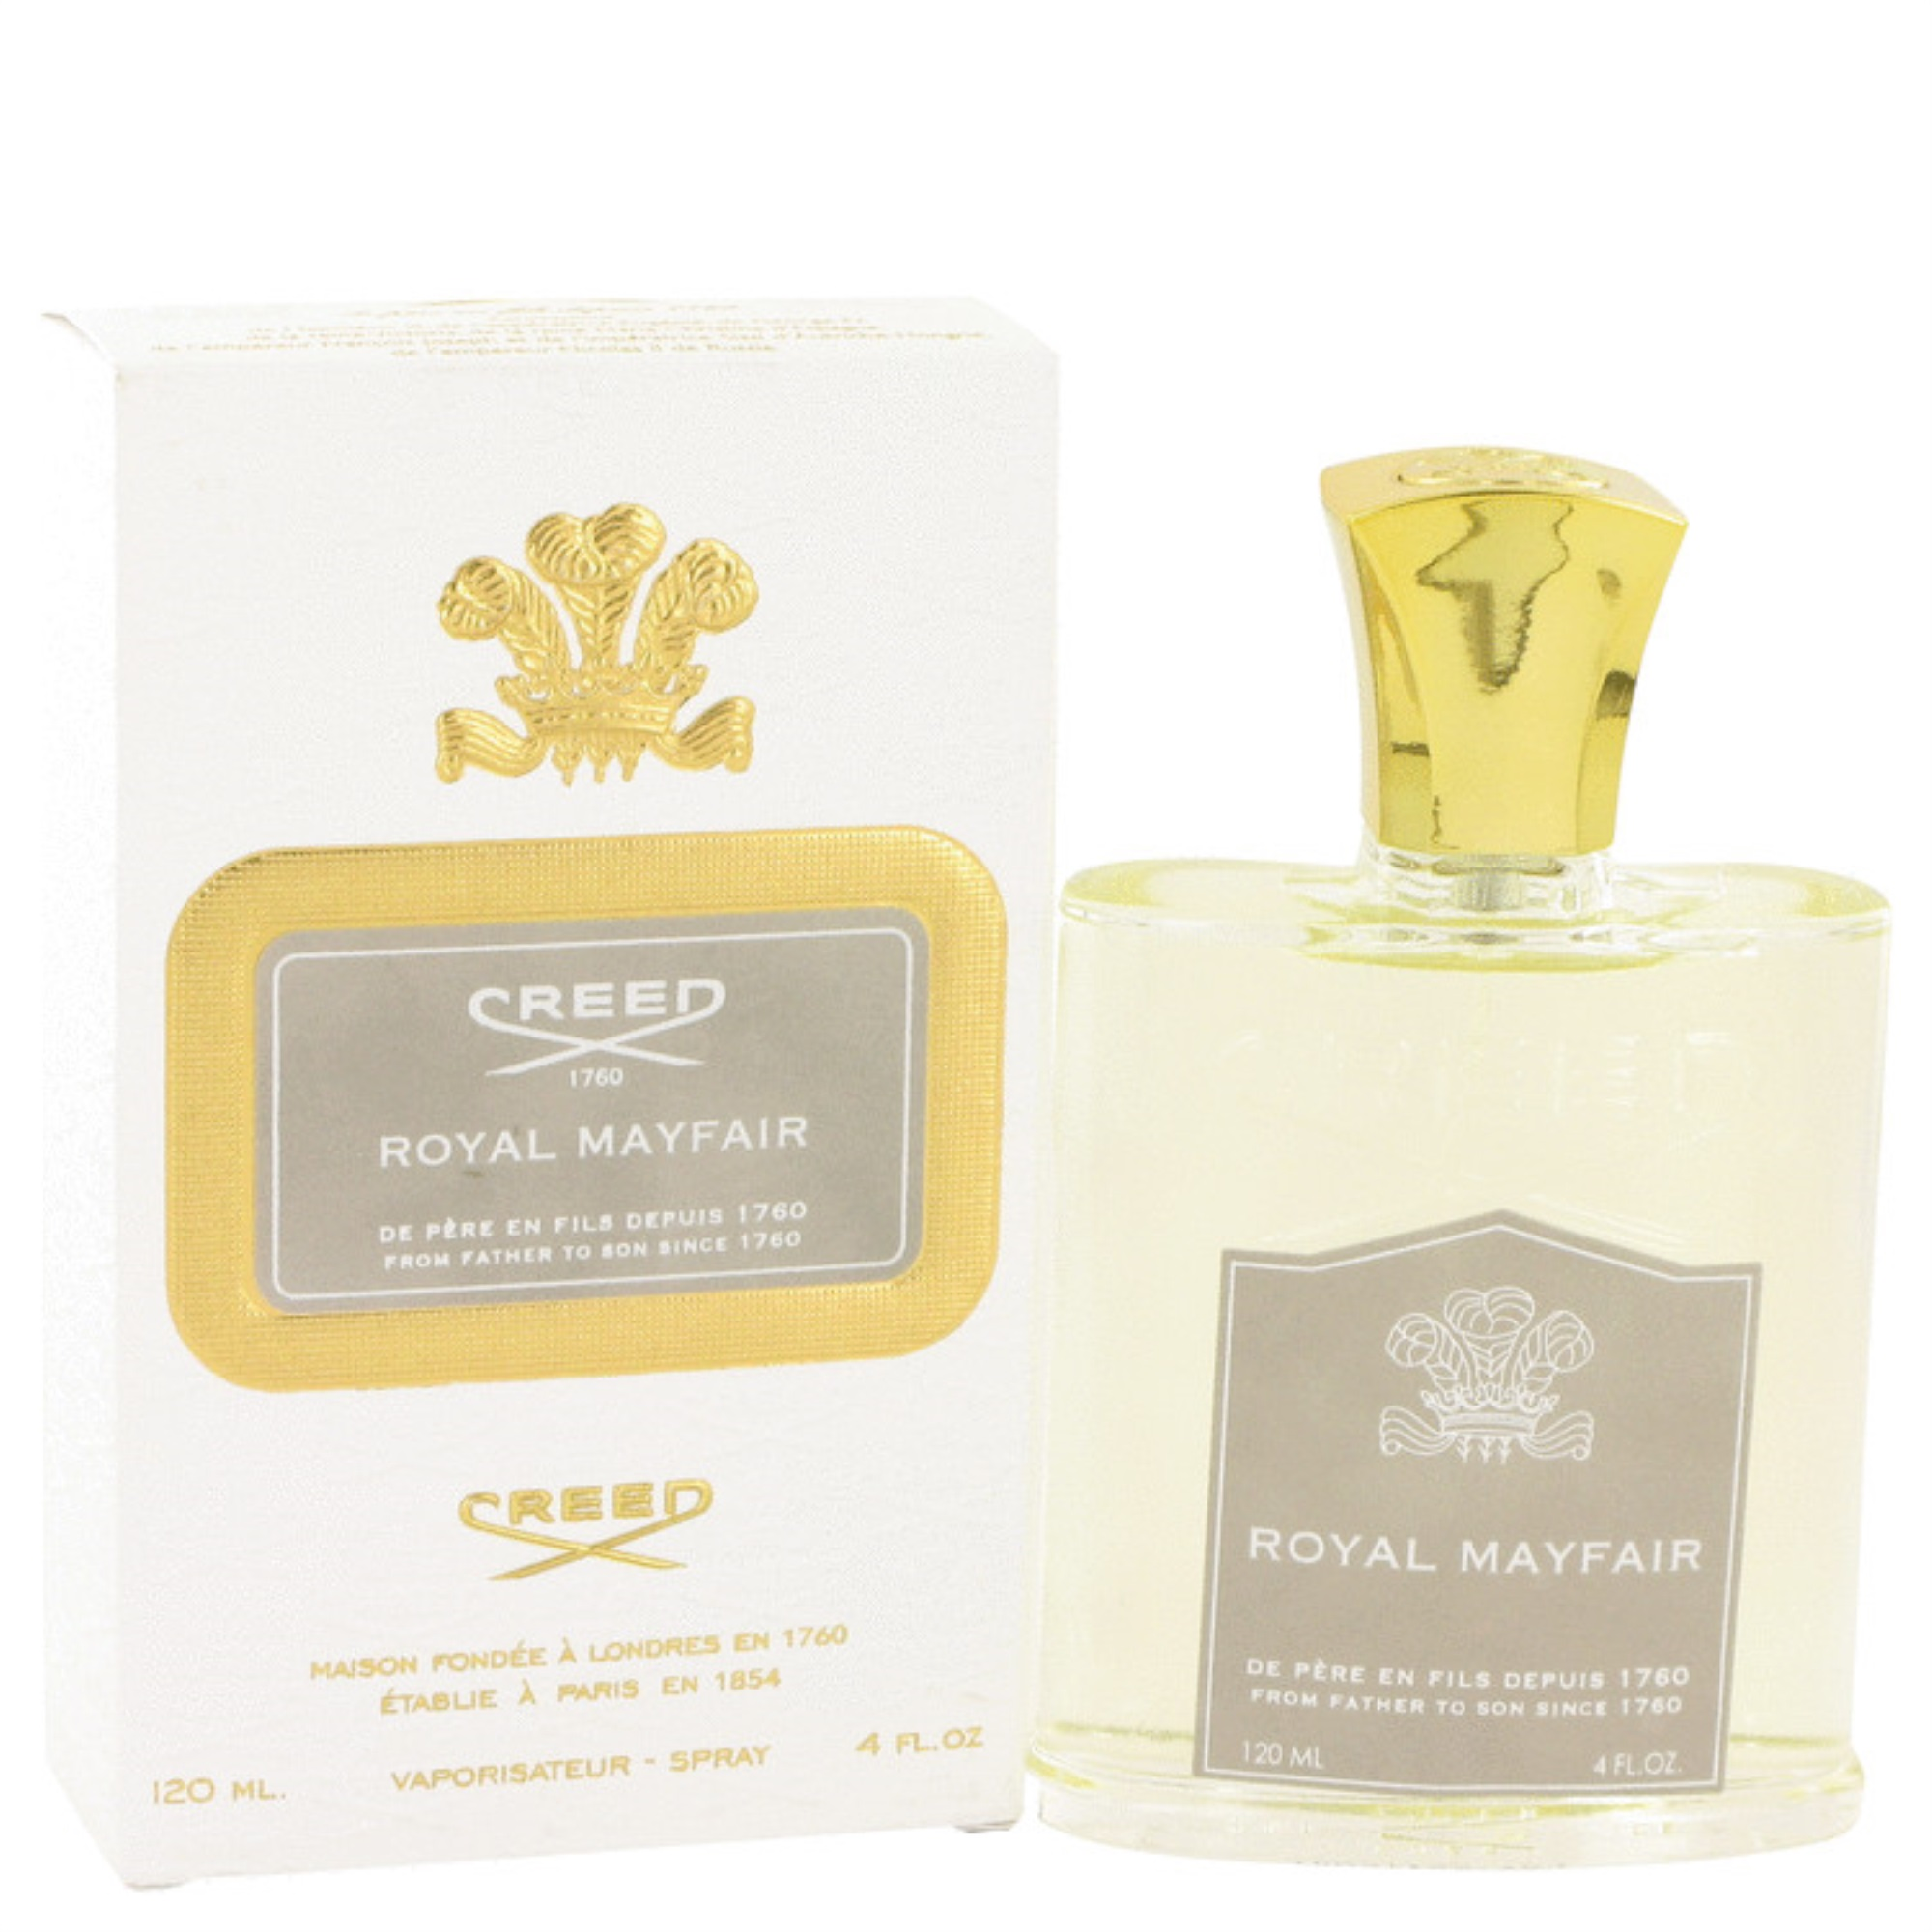 Royal Mayfair Cologne by Creed, 4 oz Millesime Spray - image 1 of 3